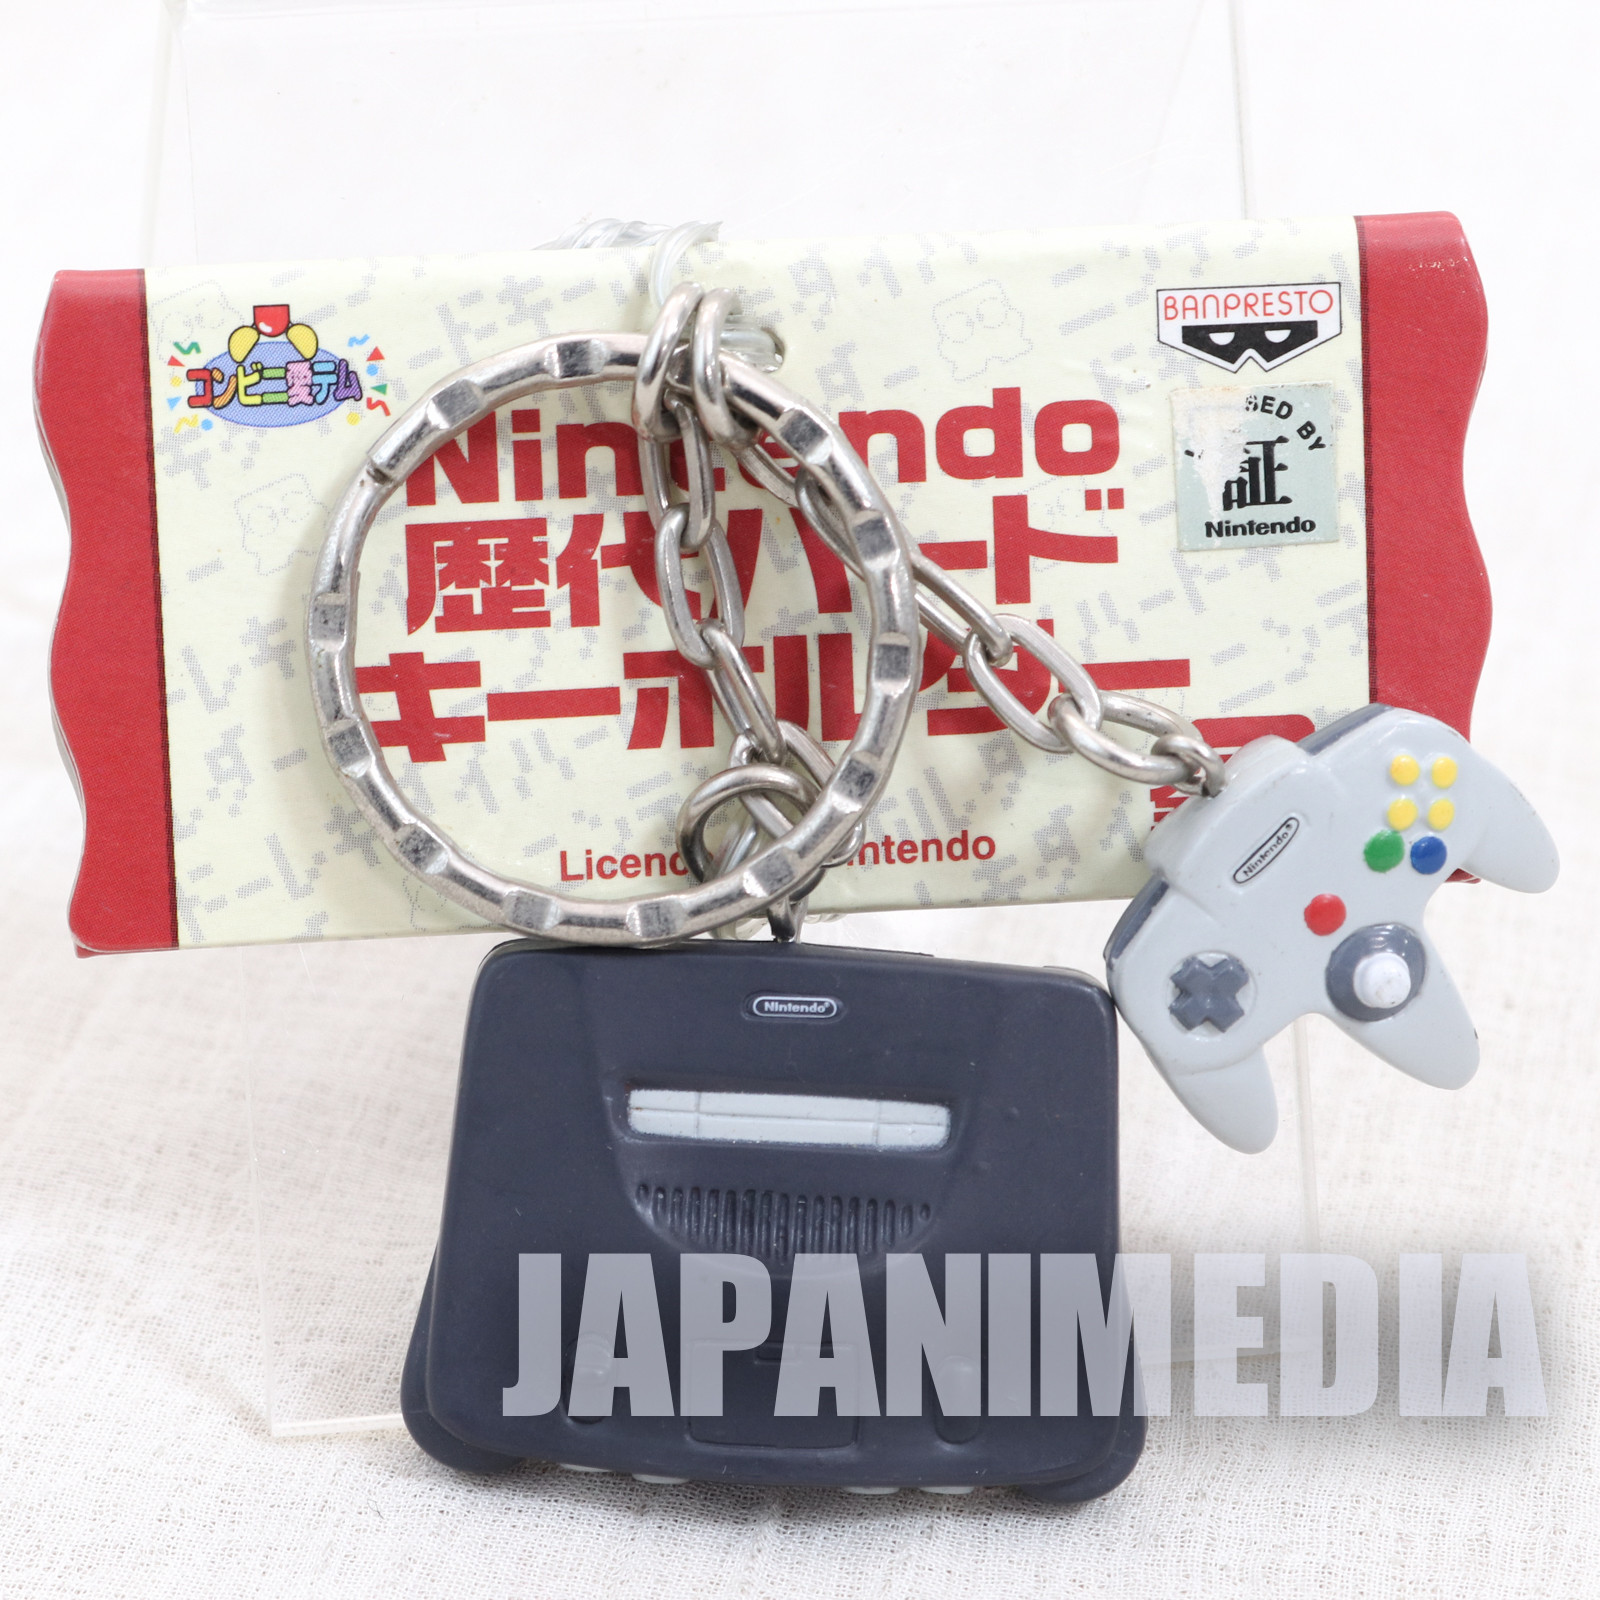 Nintendo Game Console History Miniature Figure Key Chain Nintendo 64 JAPAN